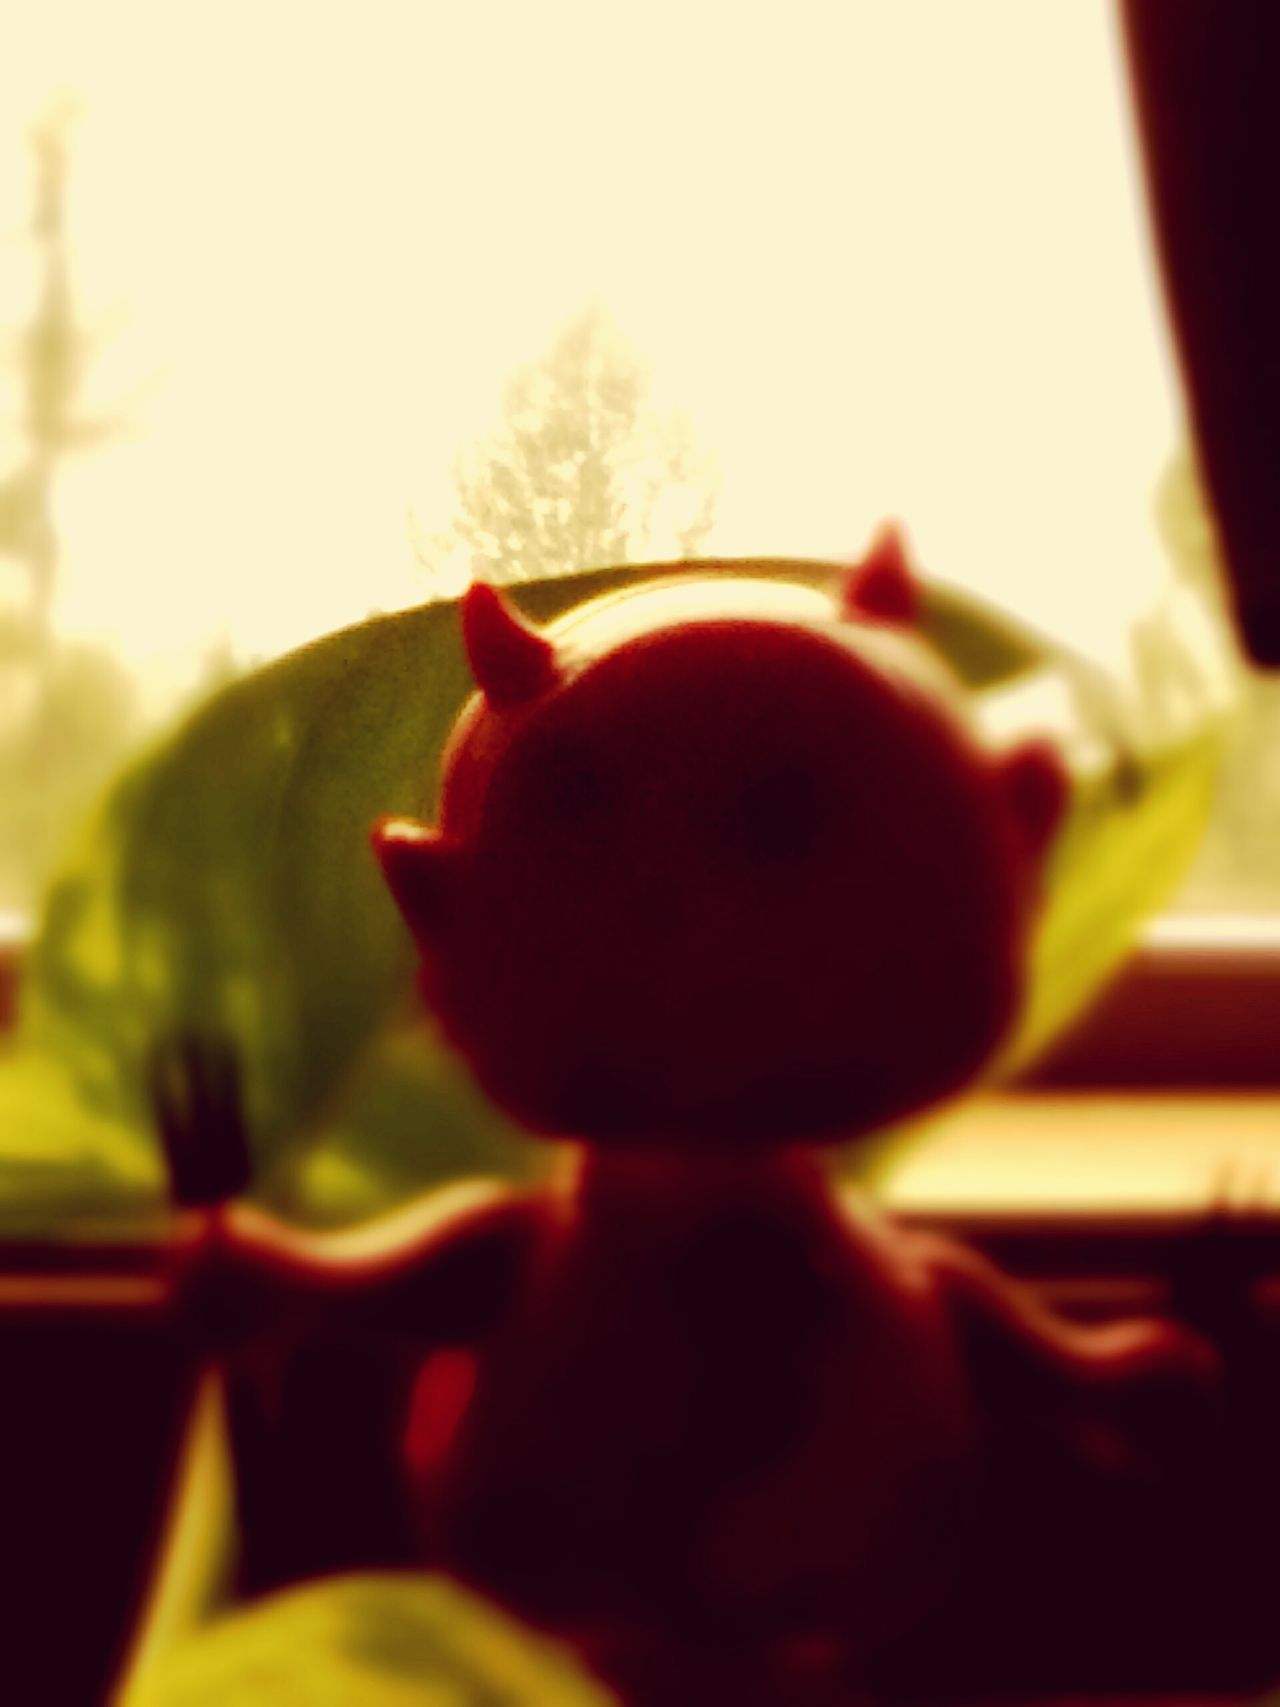 Little Devil dancing in the window Something Different From A Different Perspective Art Color Photography Art Photography Original Photography Unusual Photography Photographic Love Fast Through A Slow-motion Landscape